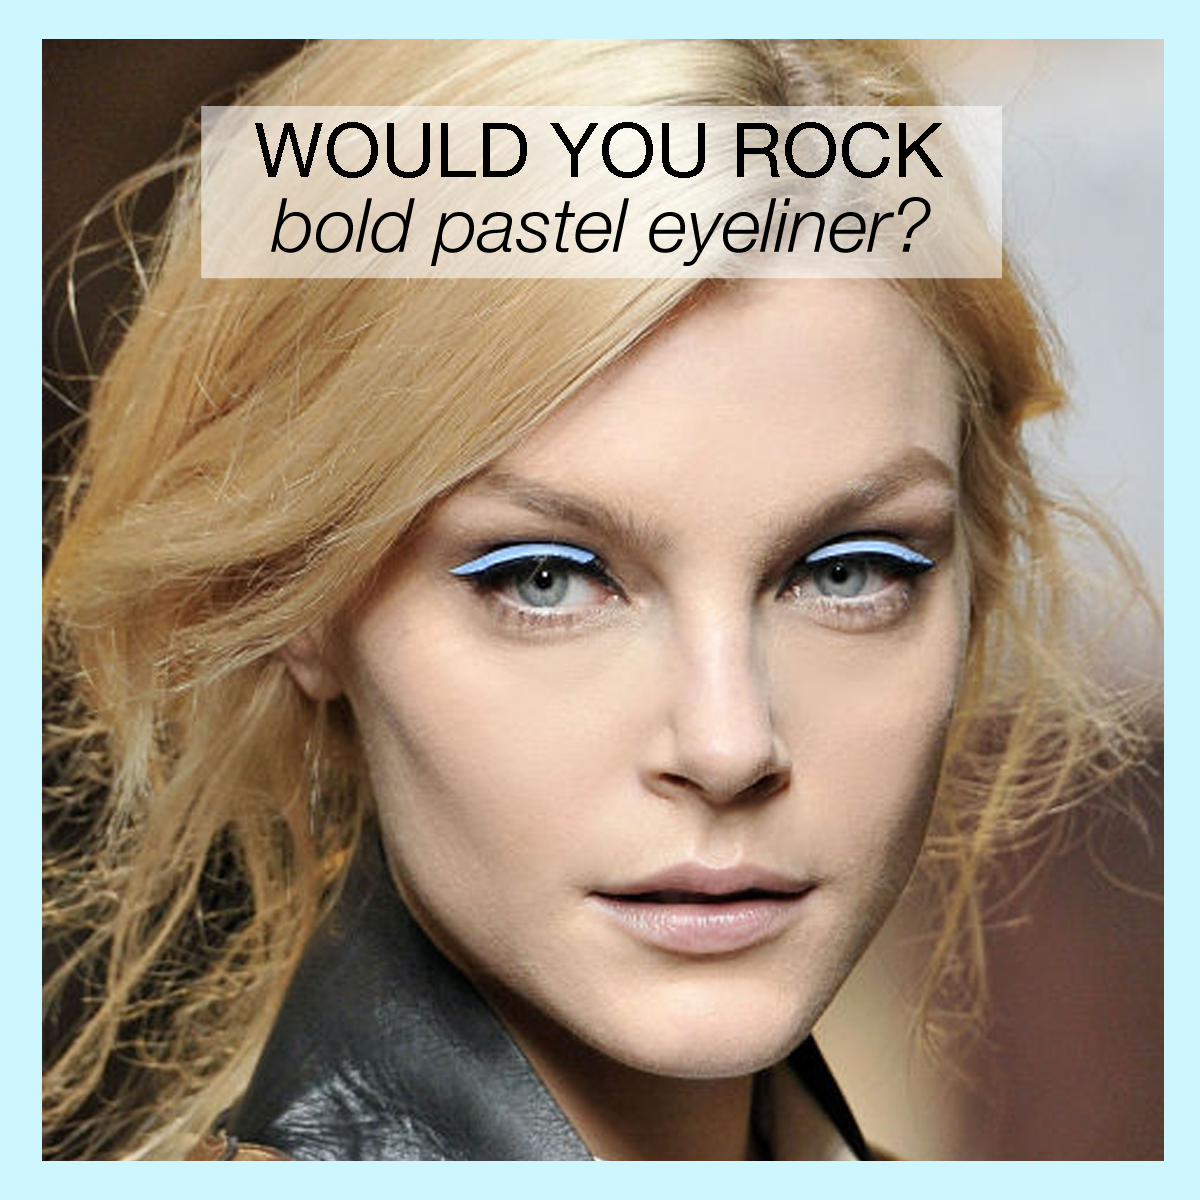 Would you rock bold, ‪#‎PopArt‬ eyeliner as seen on the #Fendi ‪#‎runway‬? ‪#‎TrendTuesday‬ (Image via http://bit.ly/1H1AceQ)